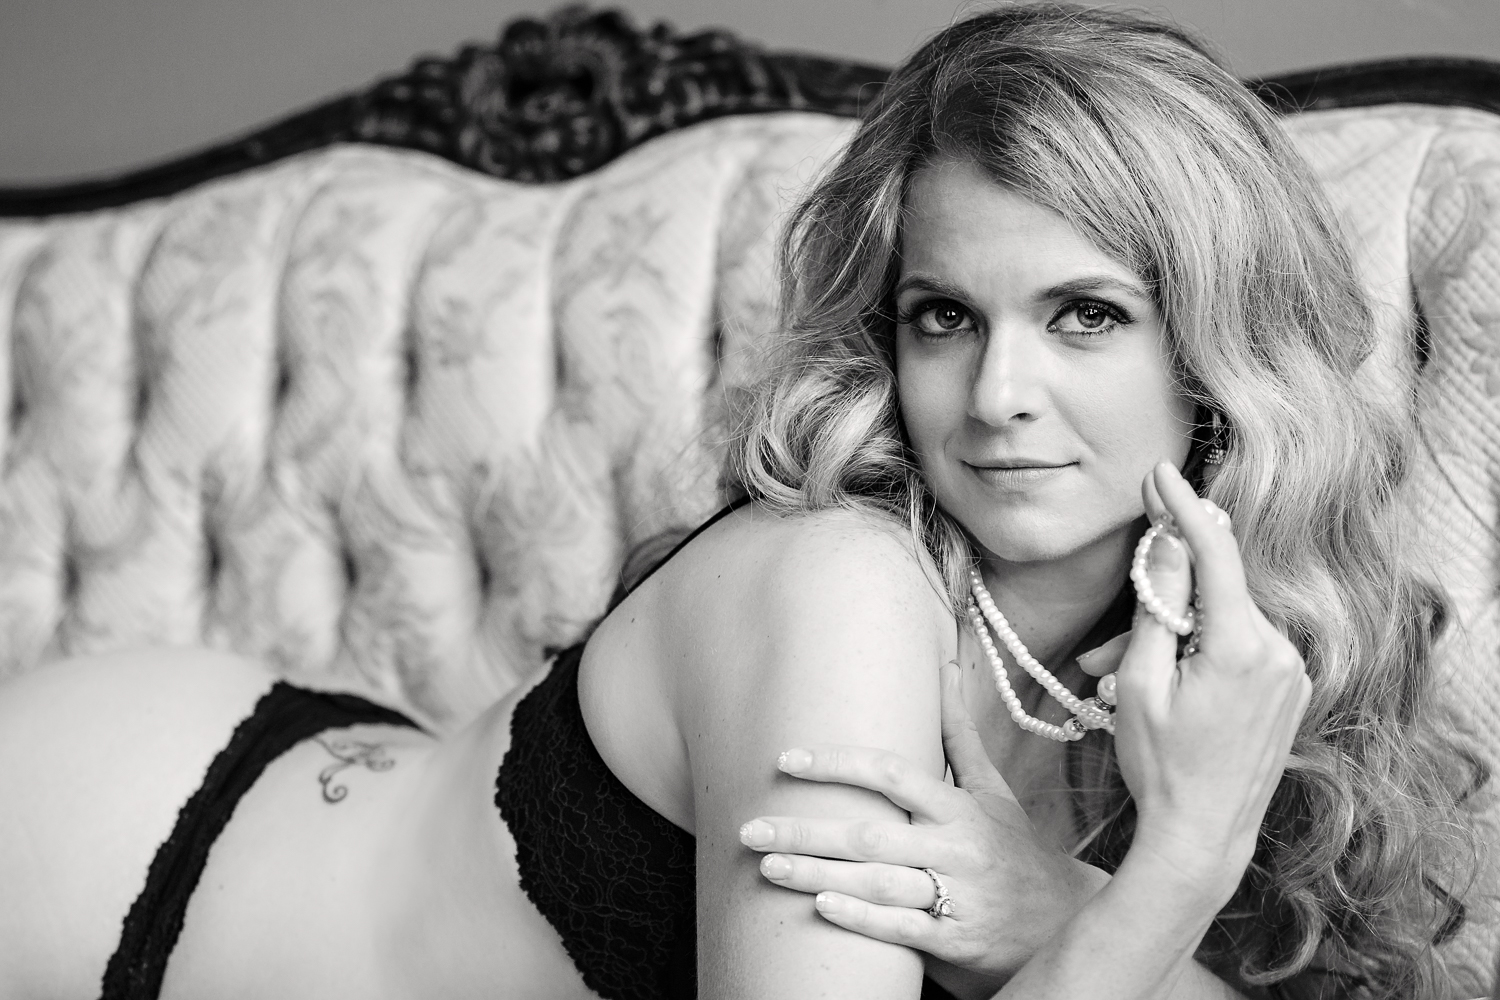 boudoir-photography-billings-mt-woman-lounges-on-chaise.jpg